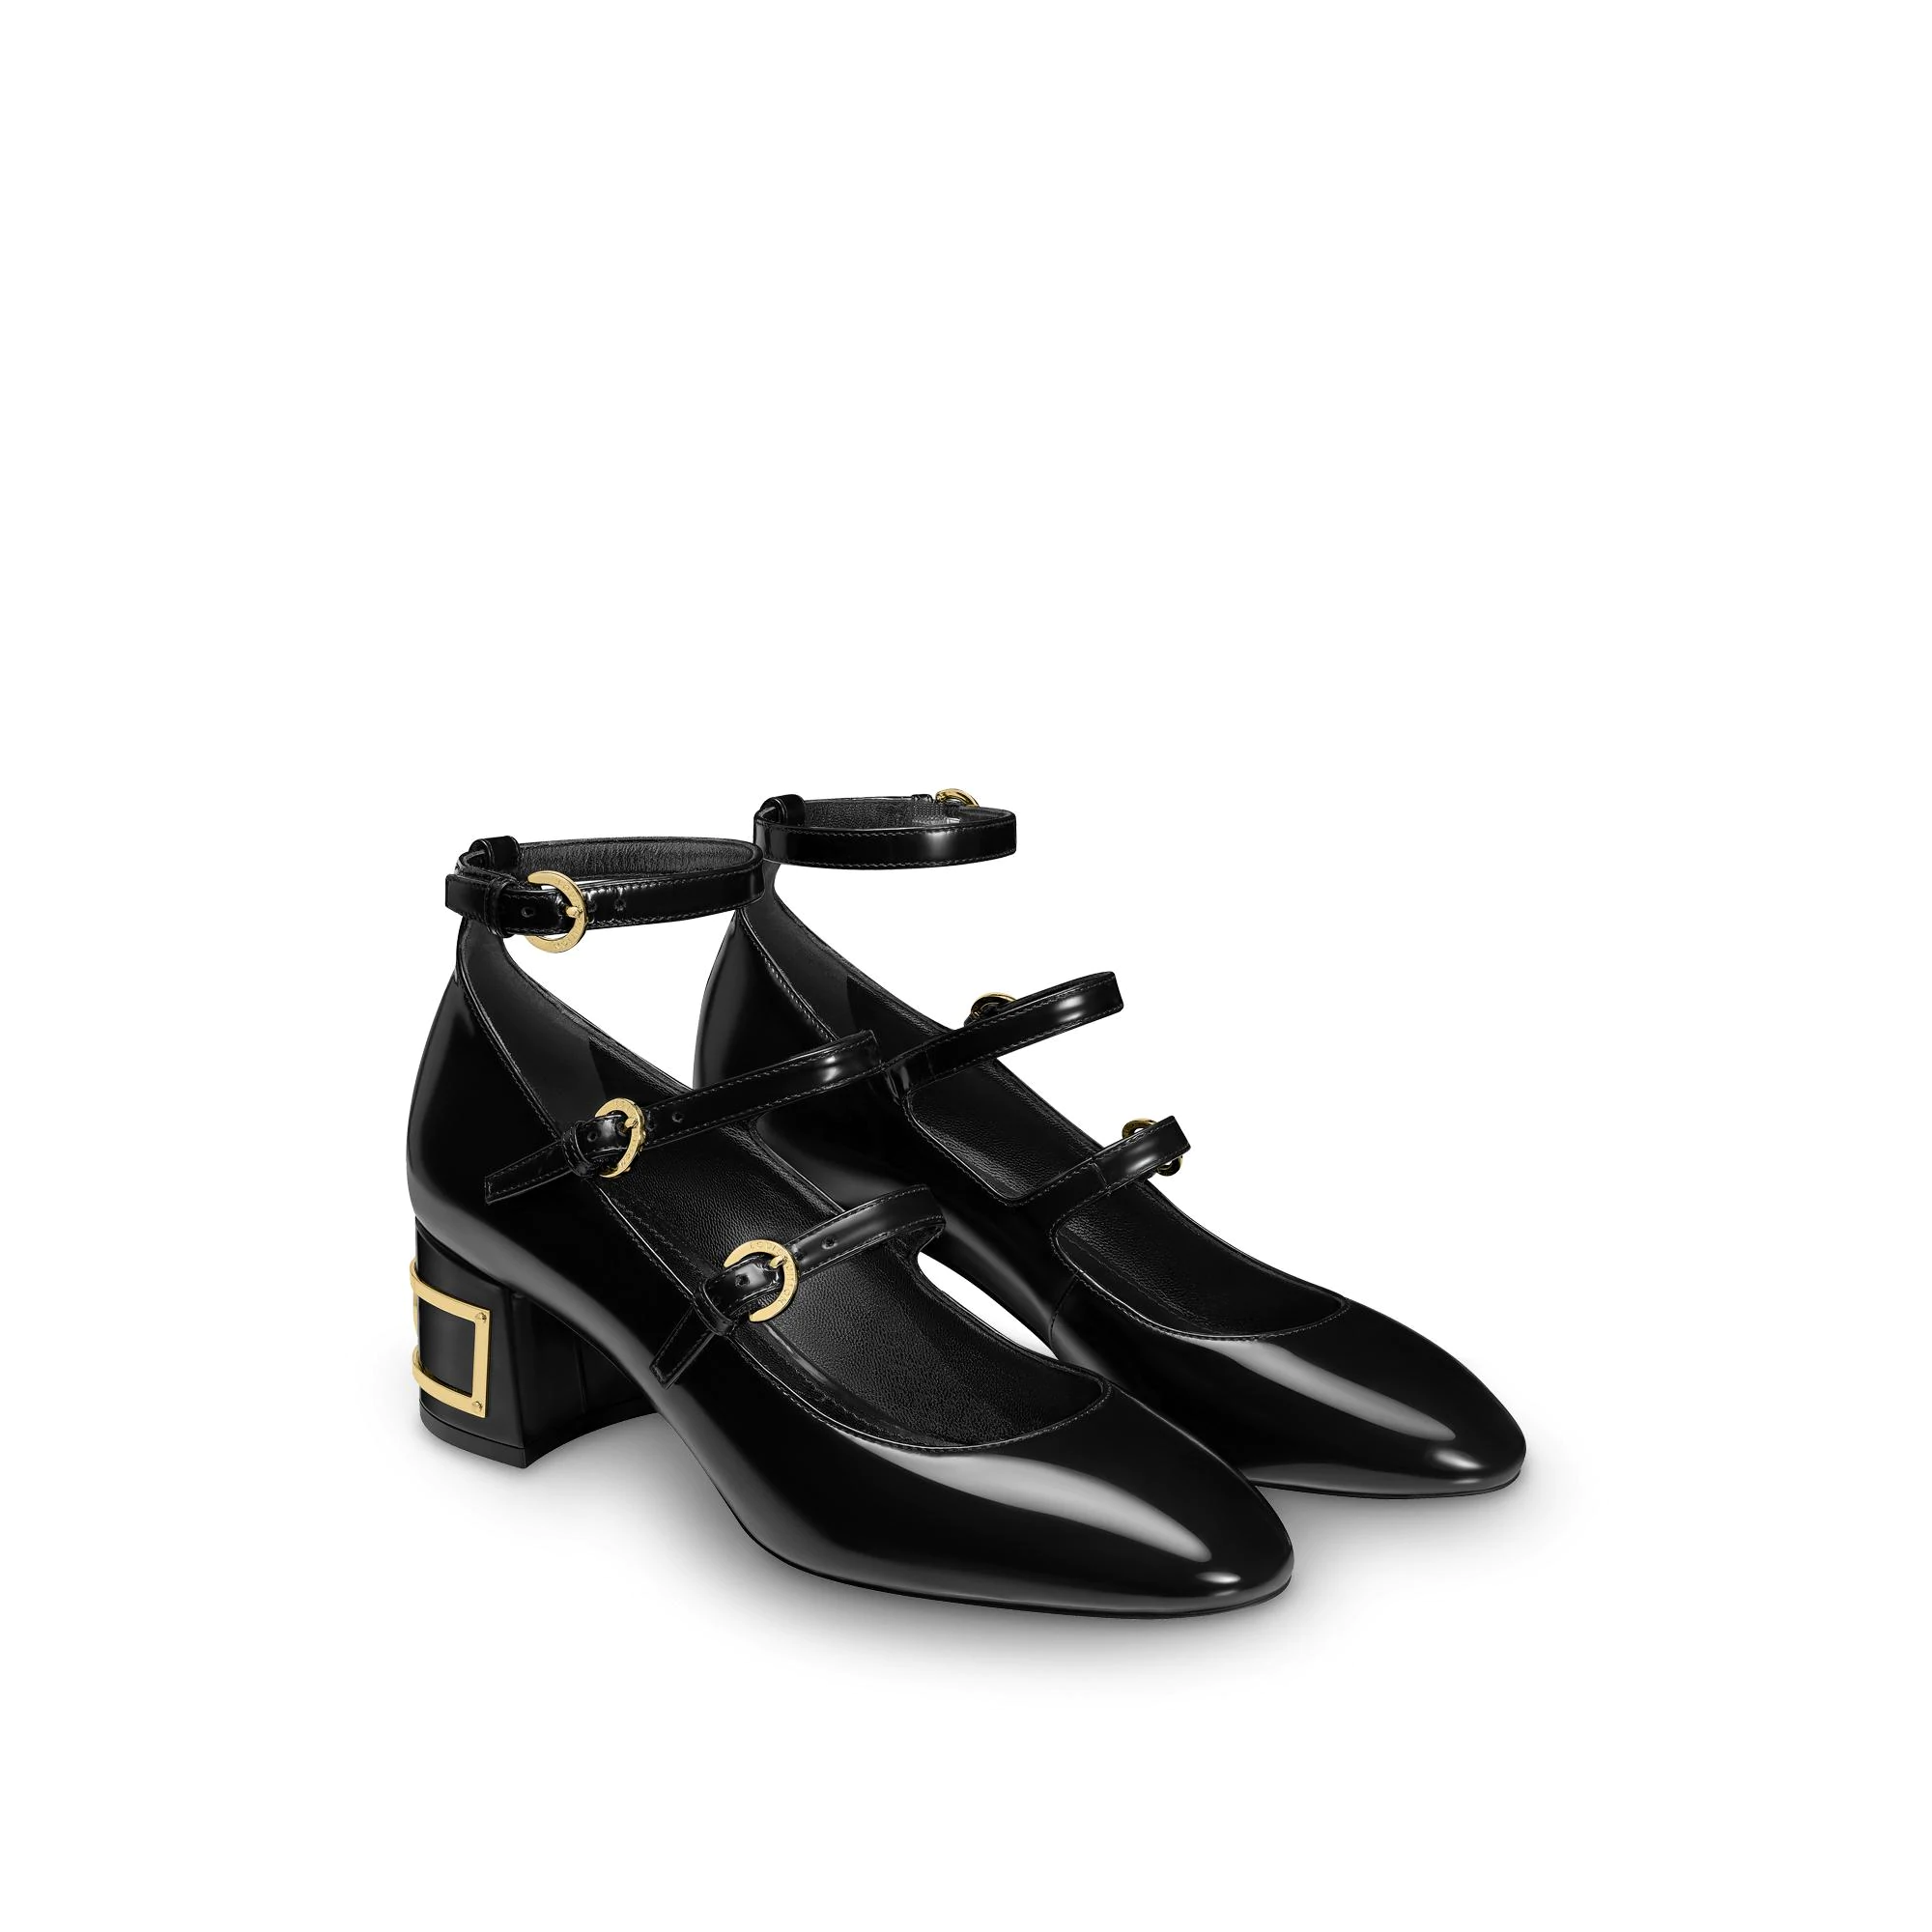 유럽직배송 루이비통 LOUIS VUITTON Bliss Multistrap Pumps 1A66HV